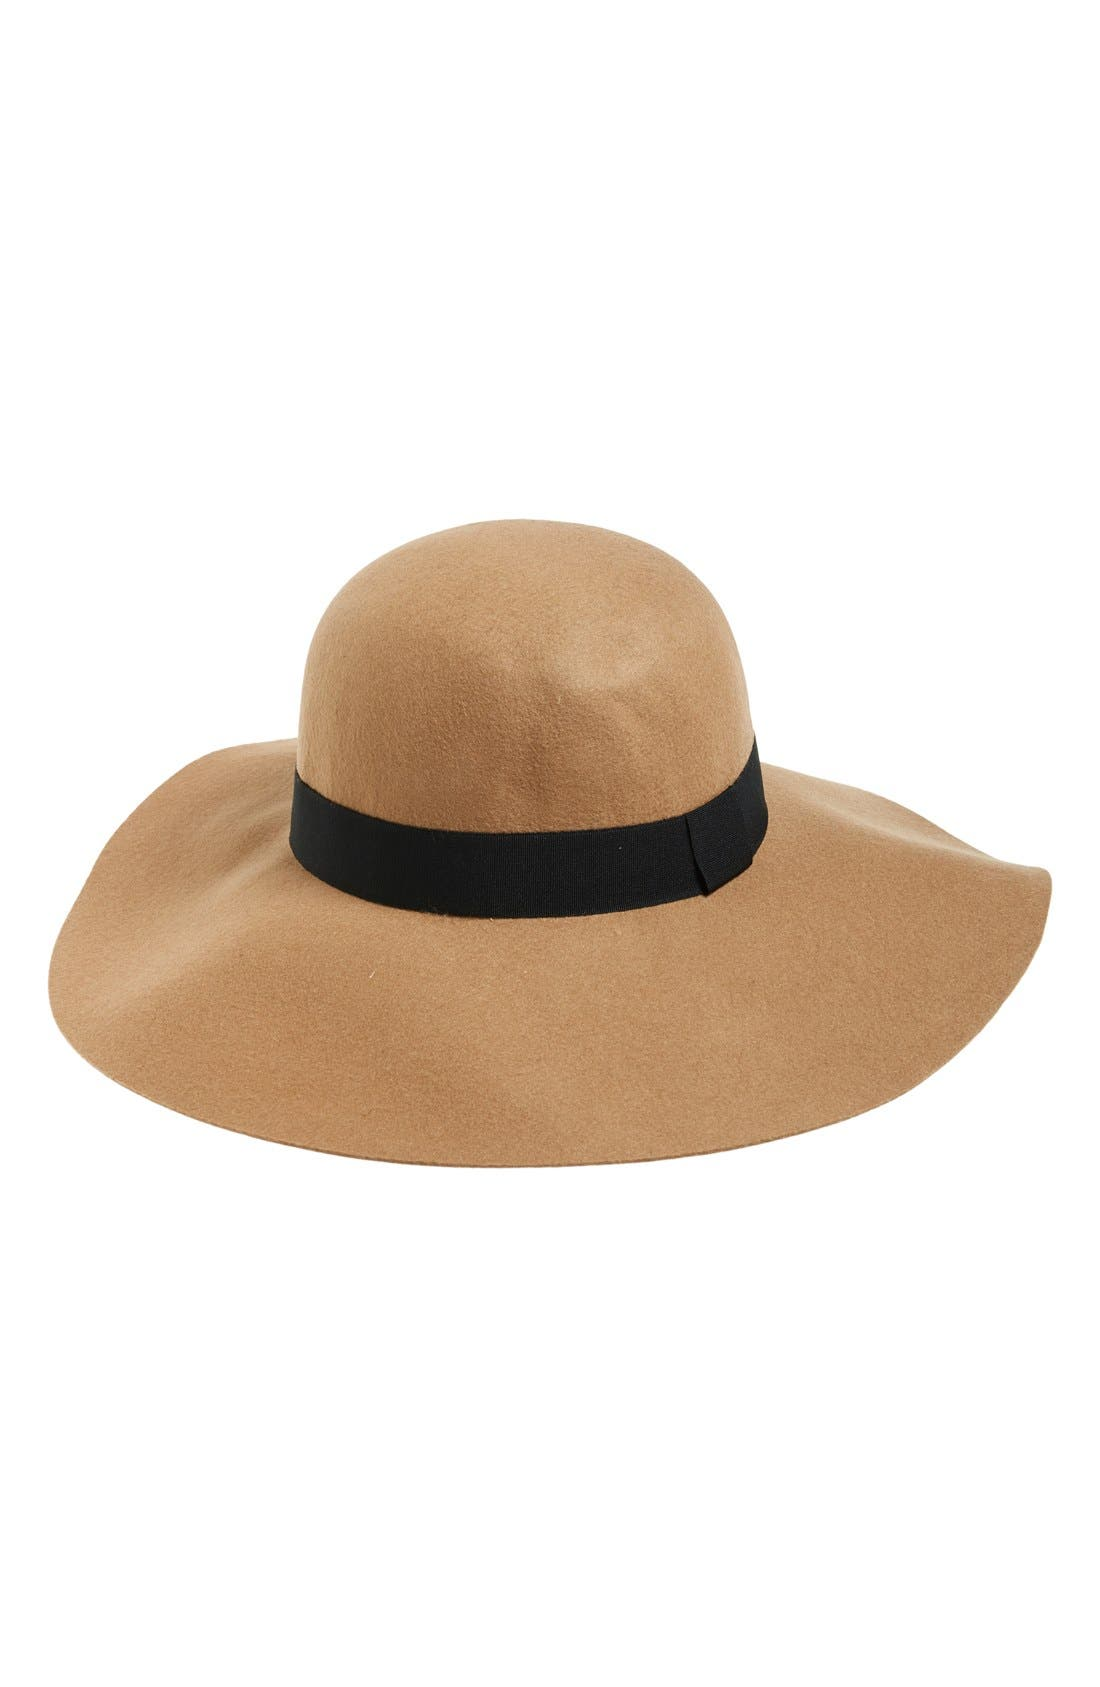 Floppy Felt Hat,                         Main,                         color, Camel